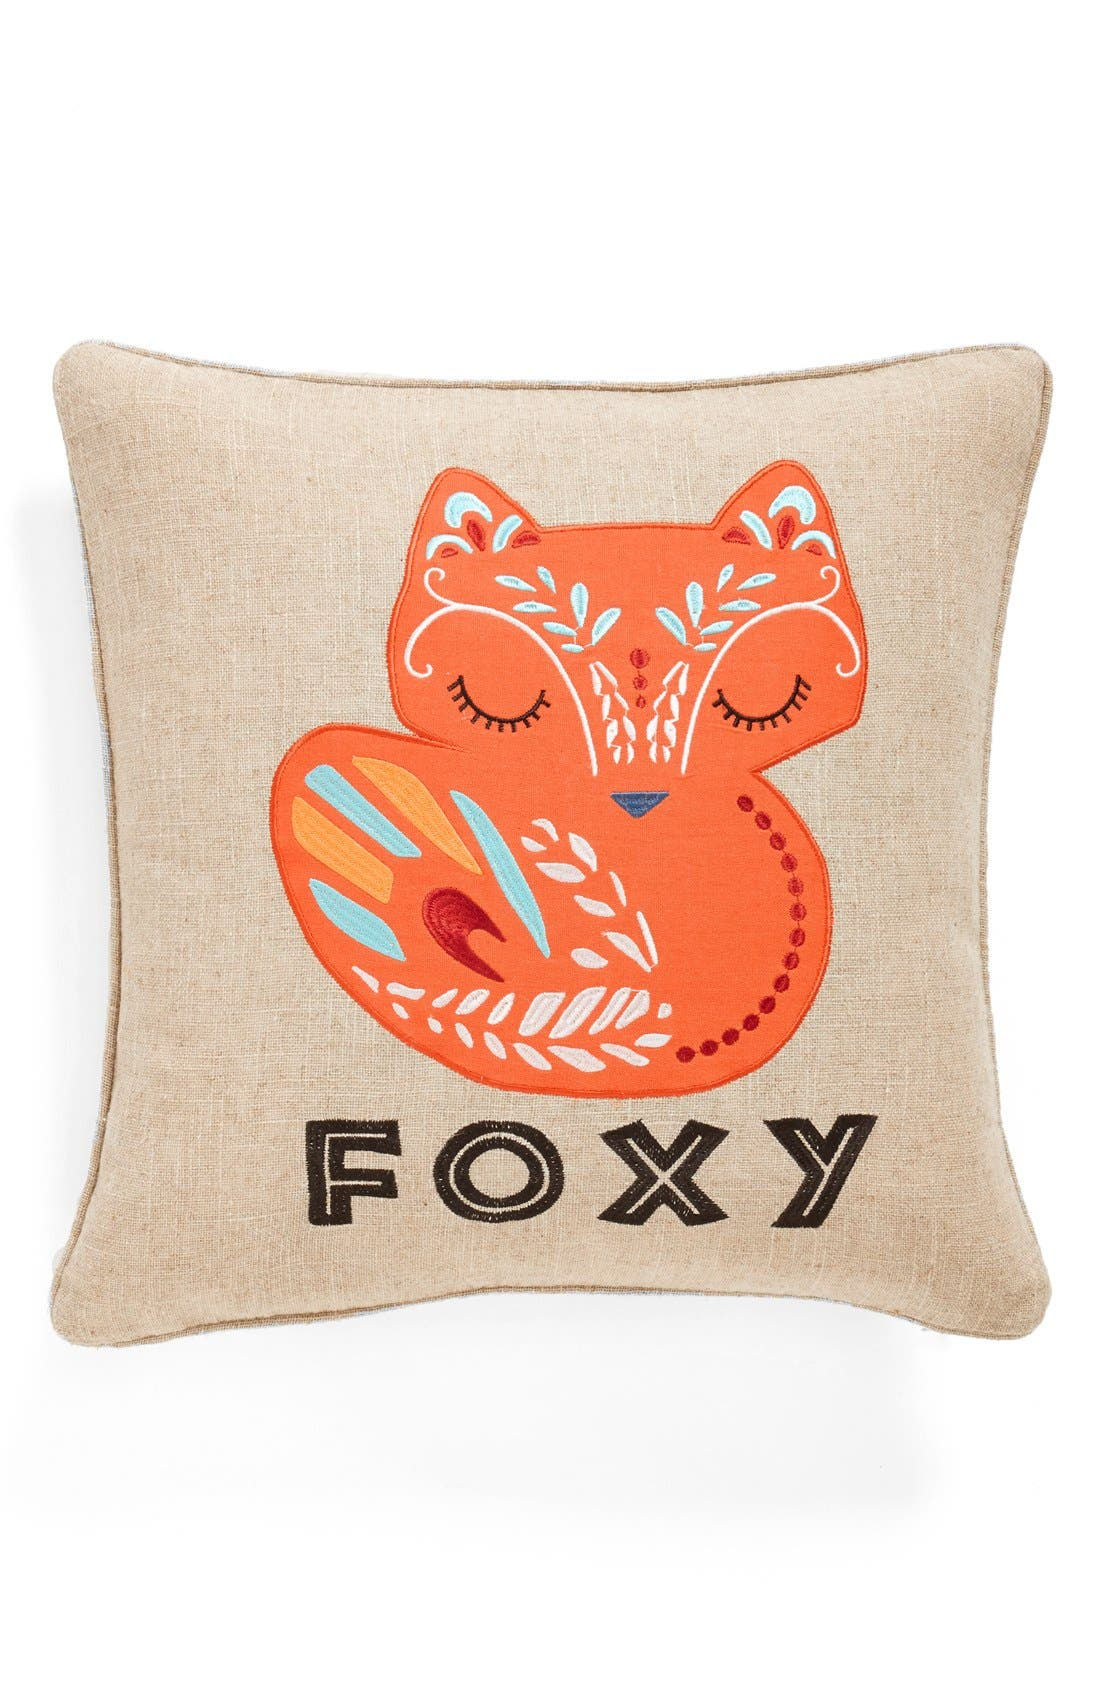 Alternate Image 1 Selected - Levtex 'Foxy' Accent Pillow